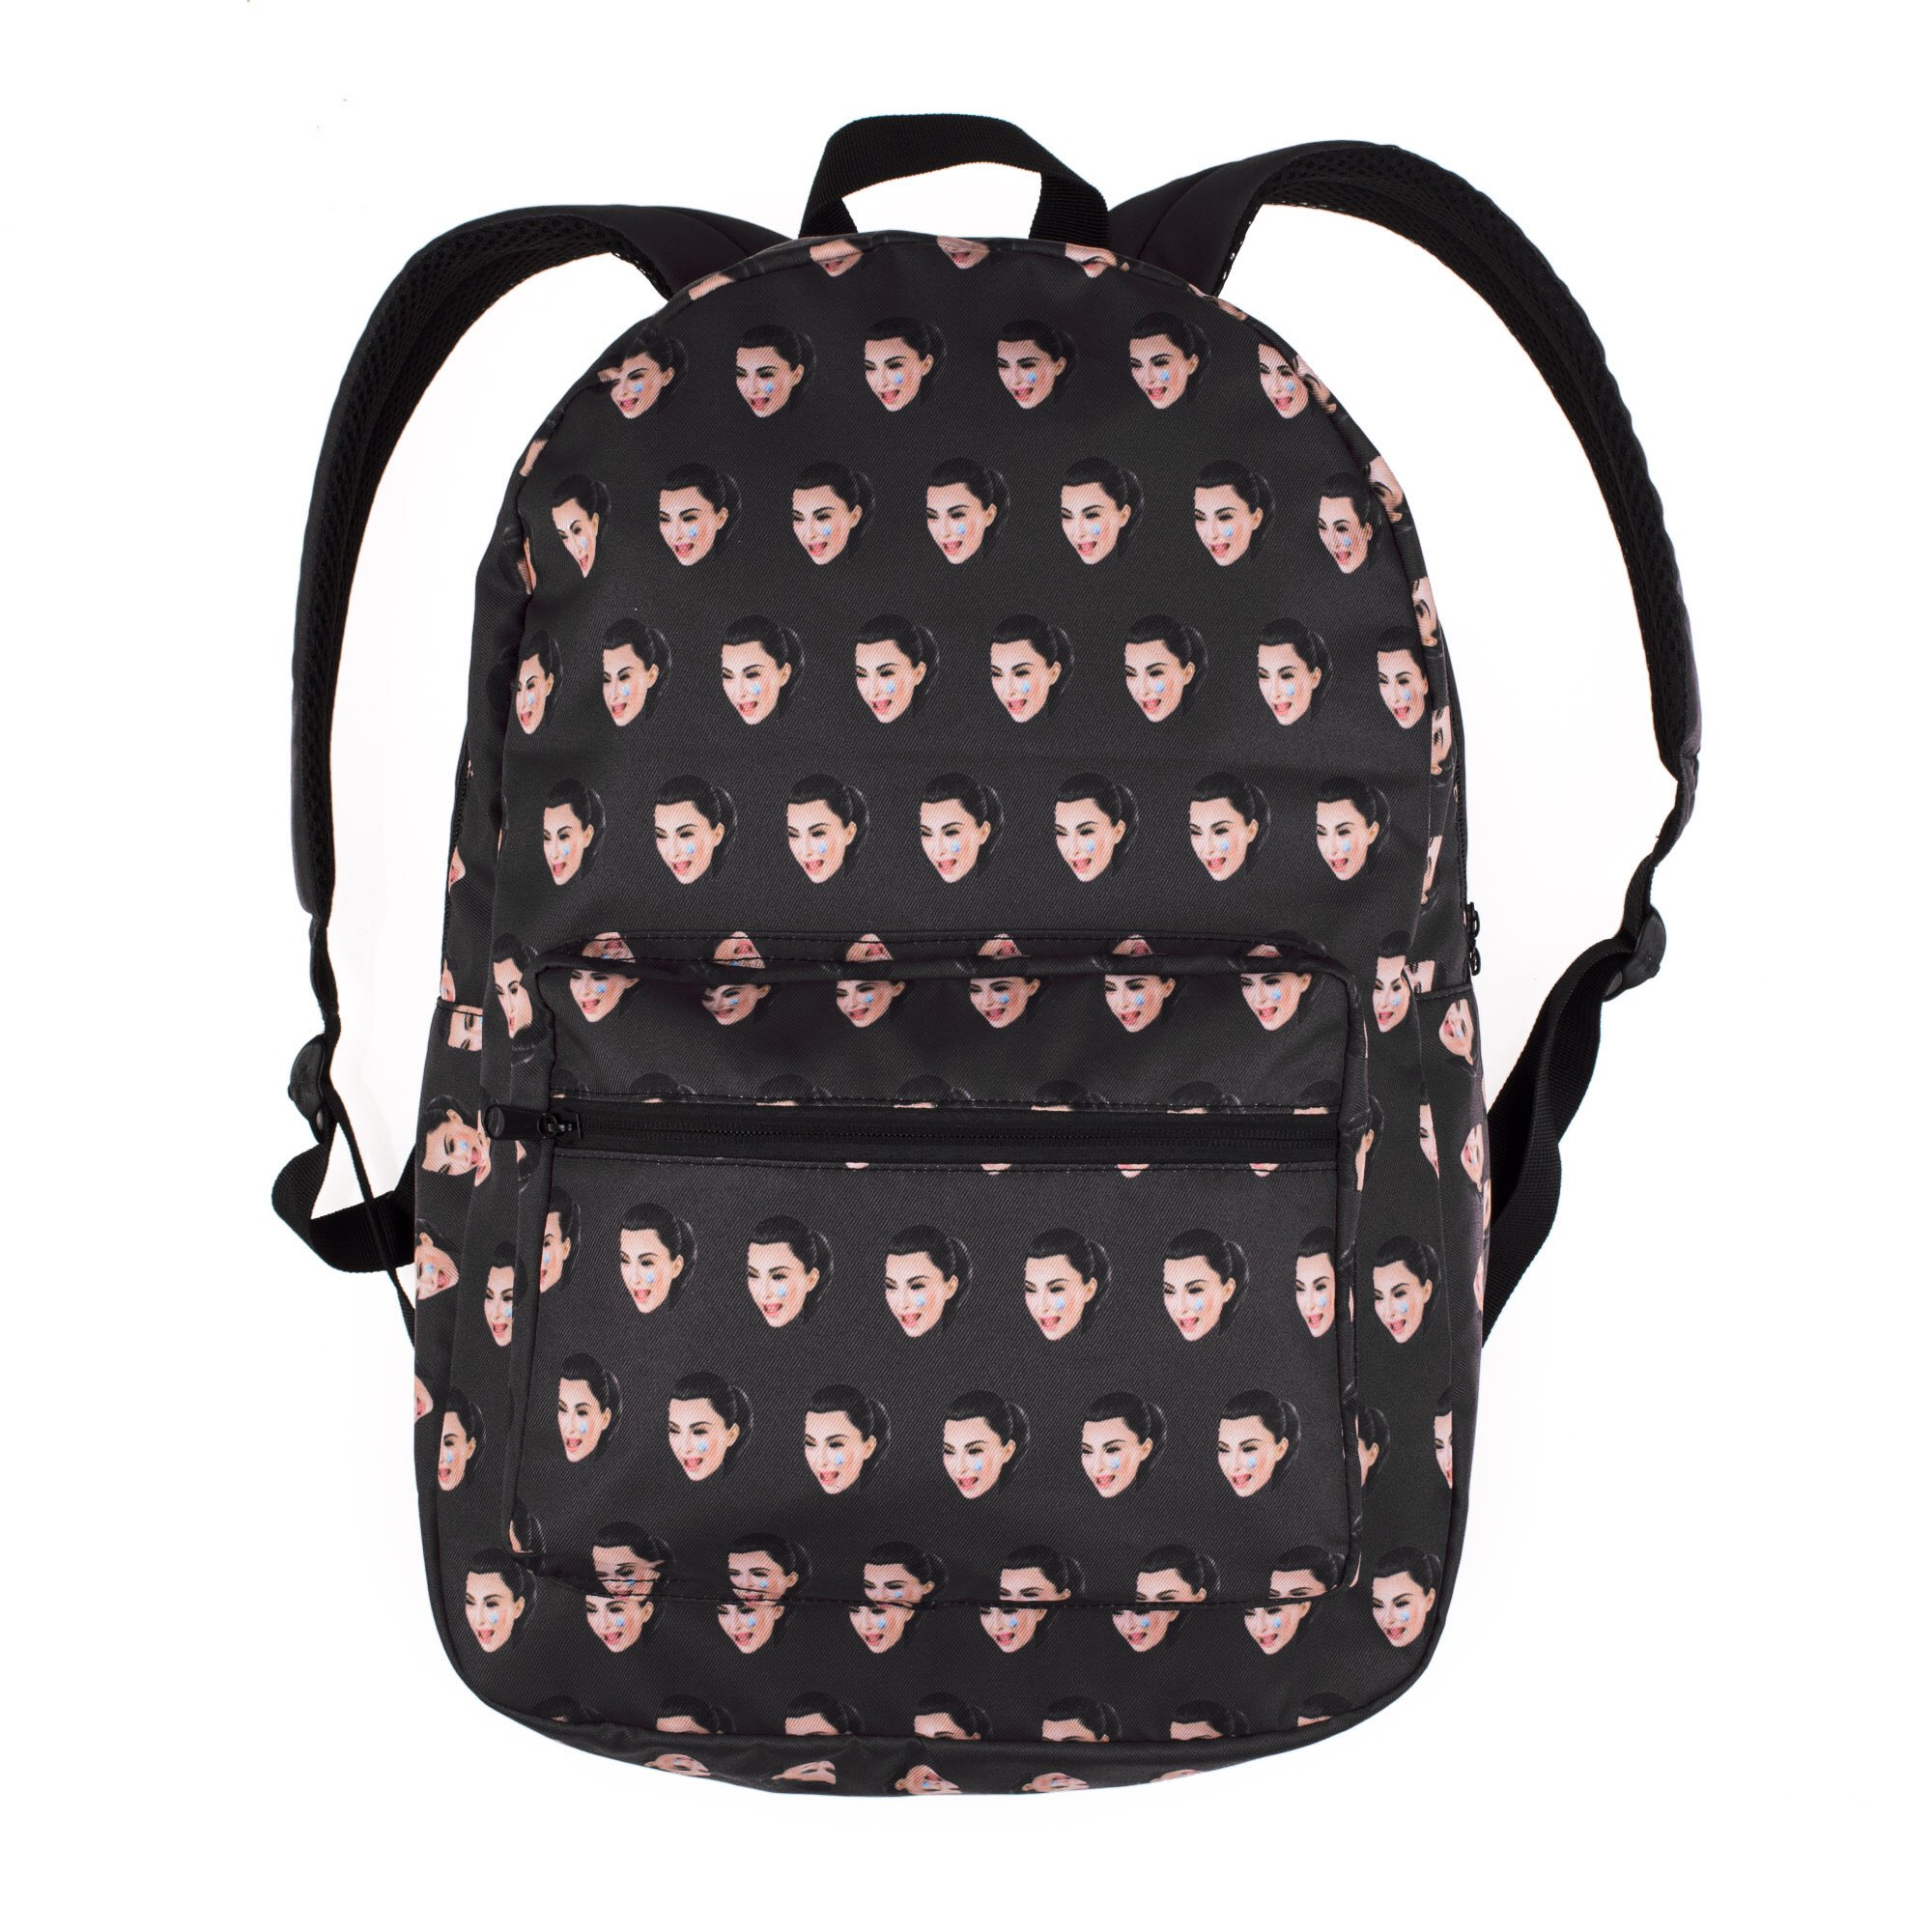 Cry face backpack https://t.co/eiJ3Tfu6zn https://t.co/IjDXi9gc60